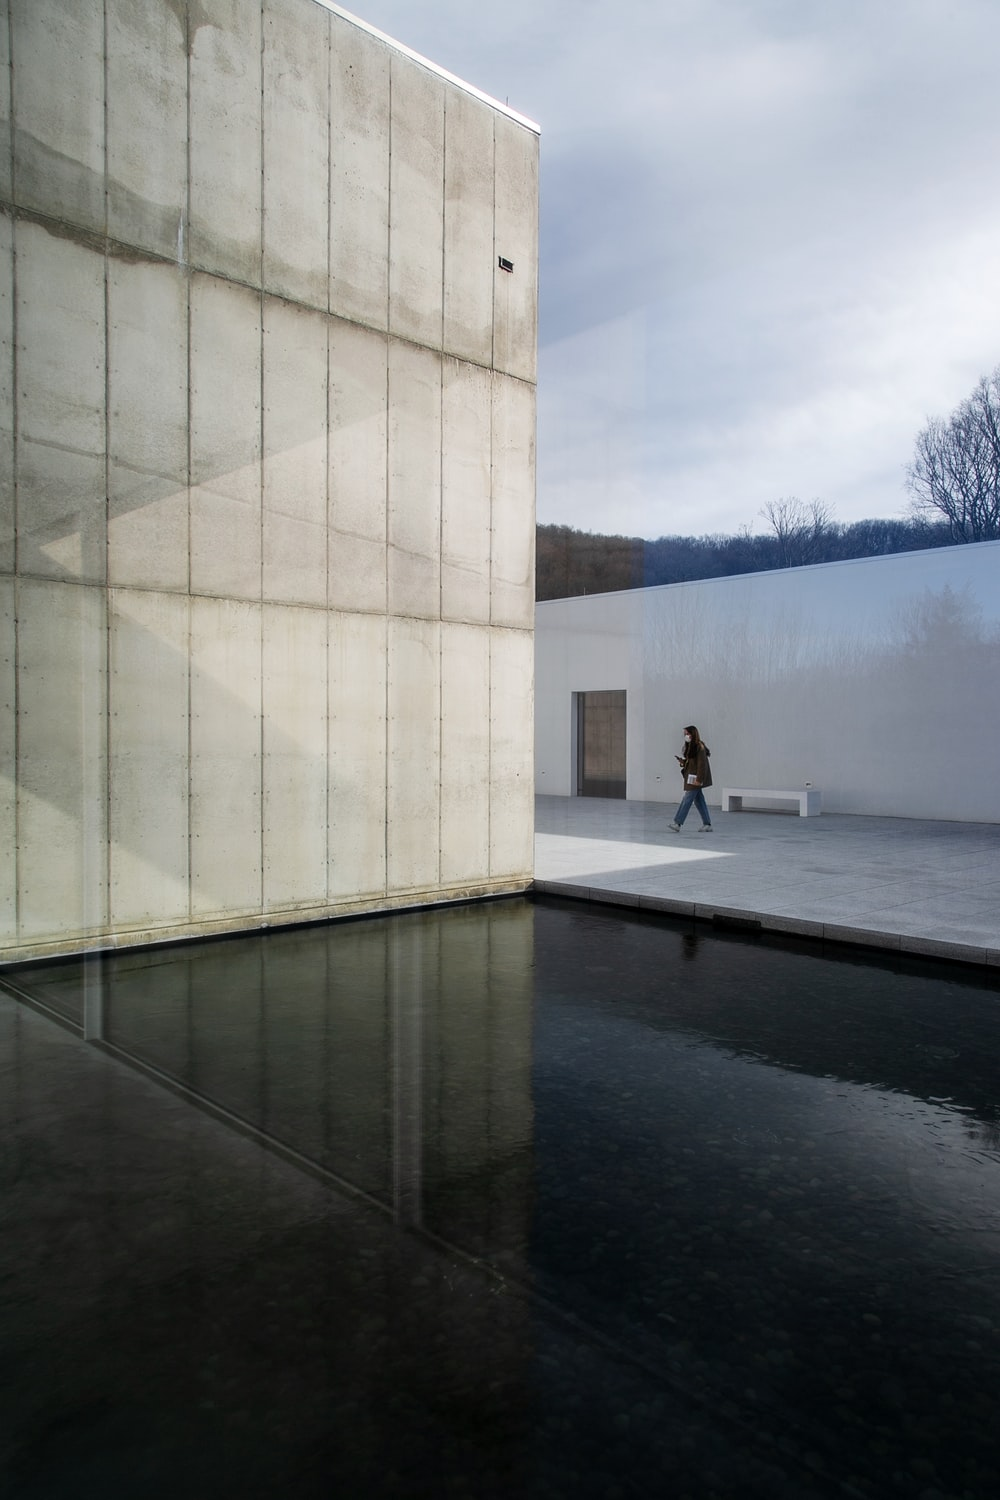 person in white shirt and black pants standing on gray concrete floor near white concrete building